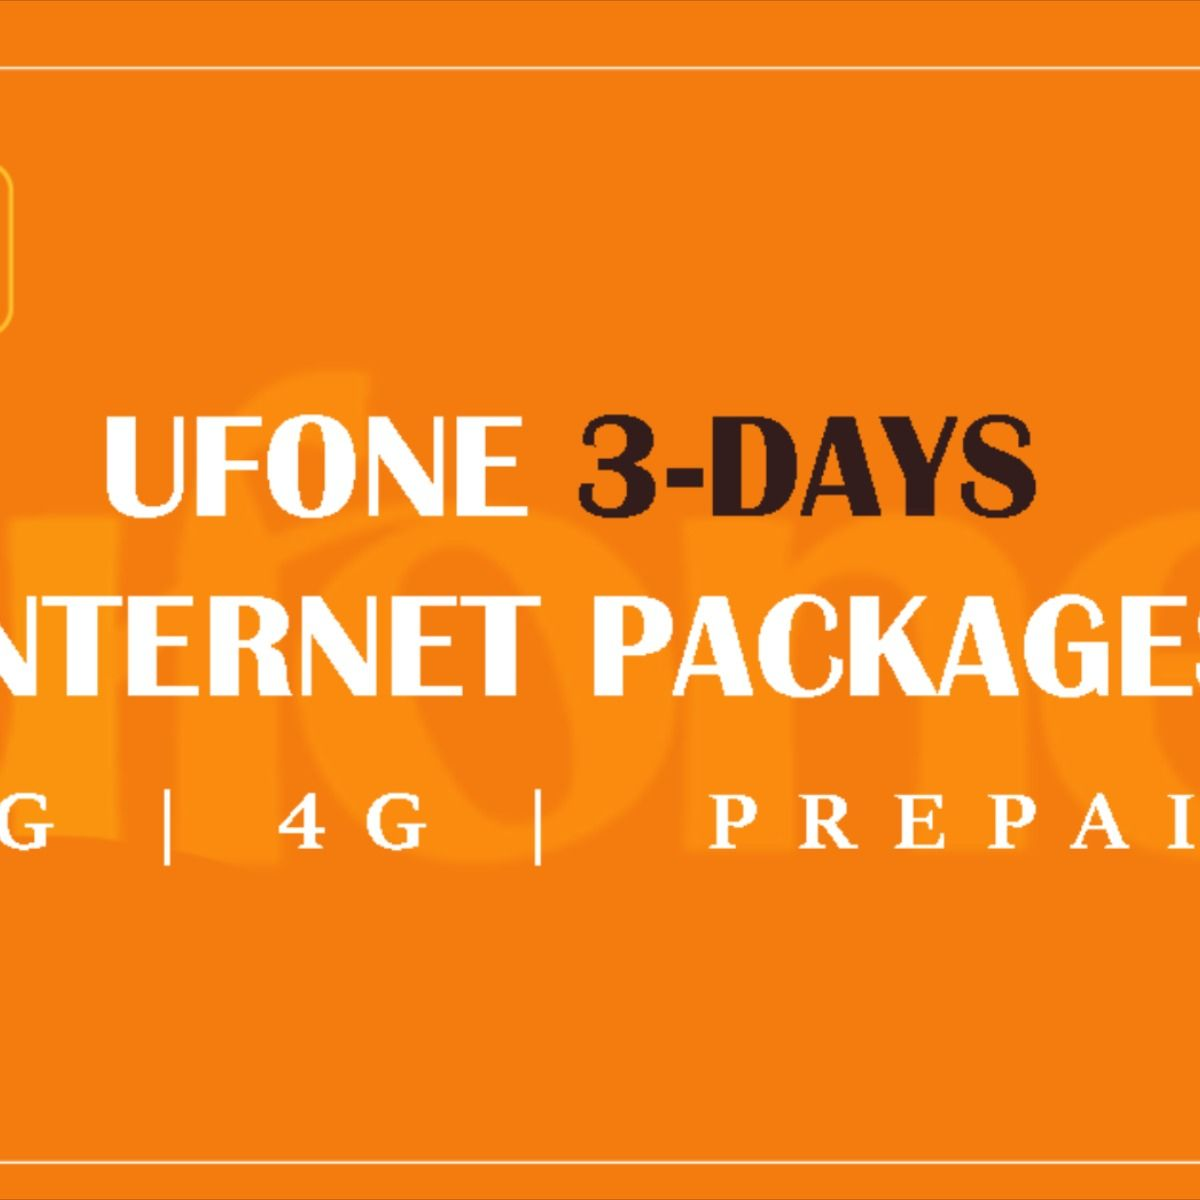 Ufone Internet Packages 3g 4g Hourly Daily Weekly In 2020 Internet Packages Packaging Emergency Loans